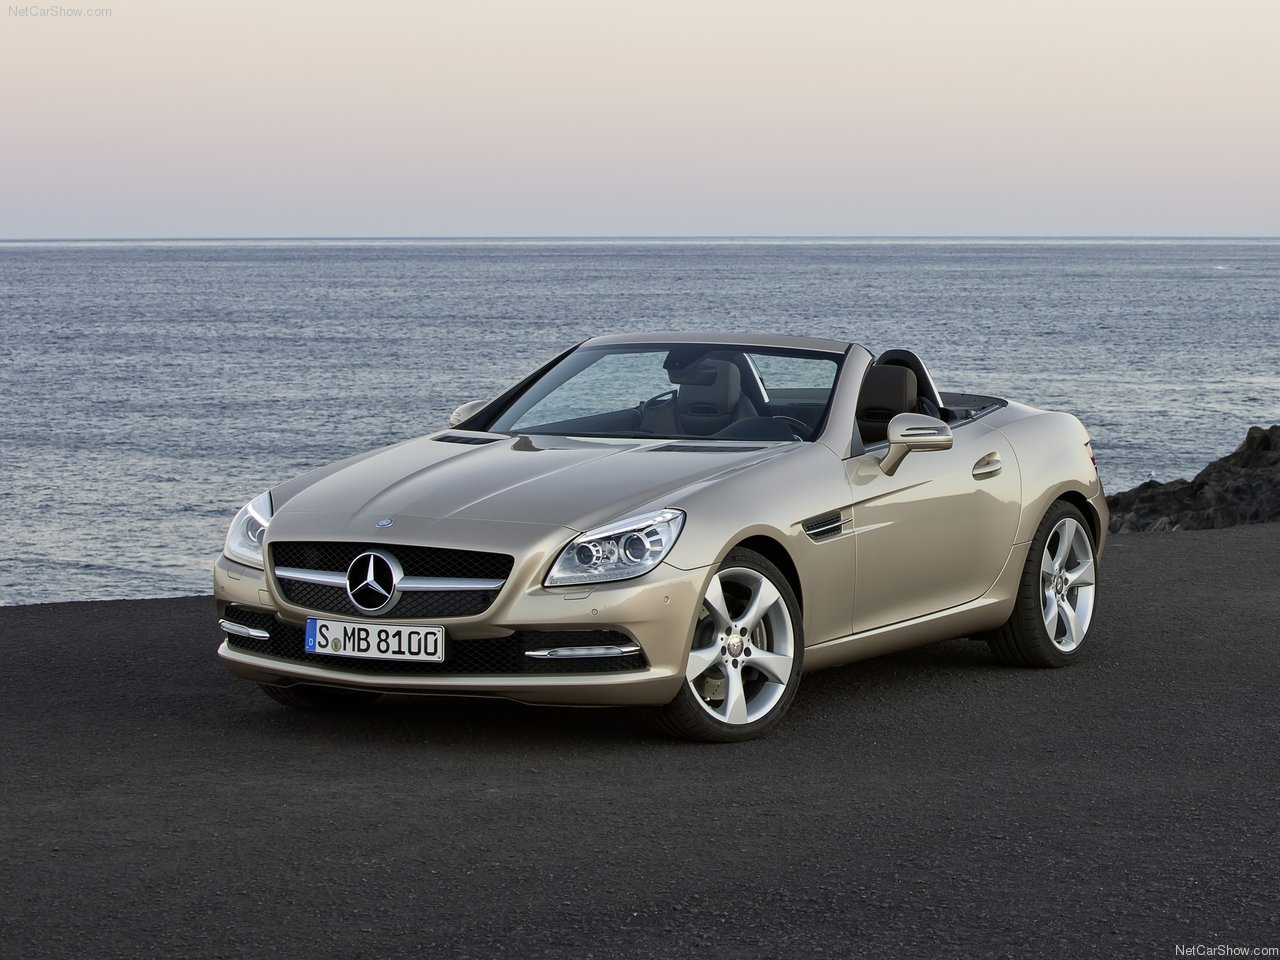 2012 mercedes benz slk class mercedes benz autos spain for 2012 mercedes benz slk350